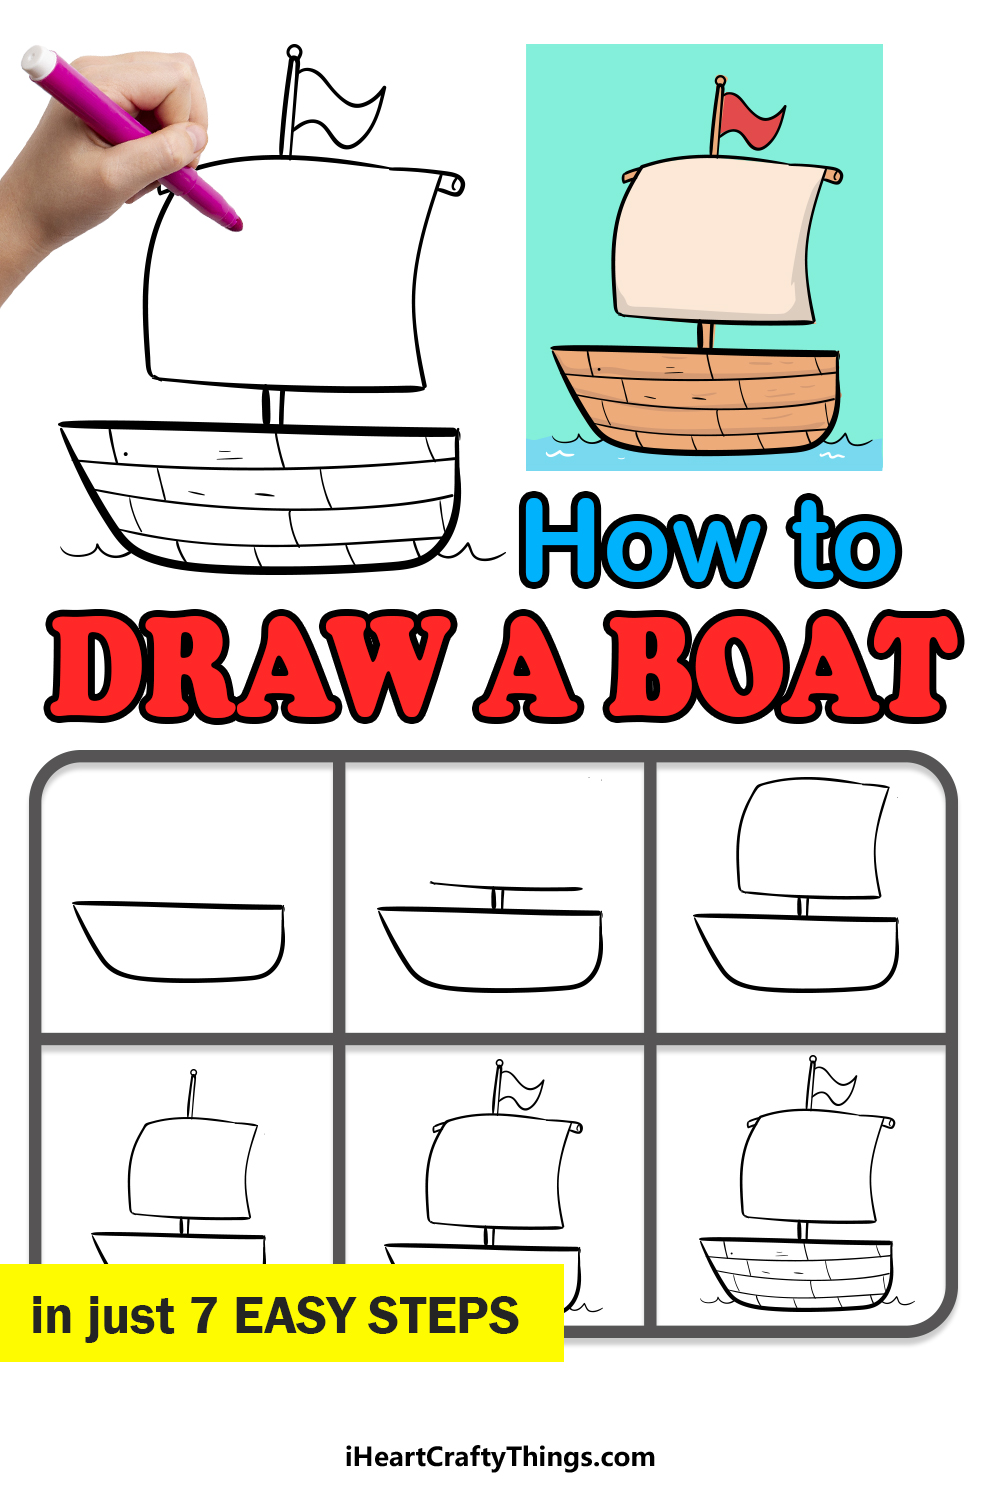 how to draw a boat in 7 easy steps